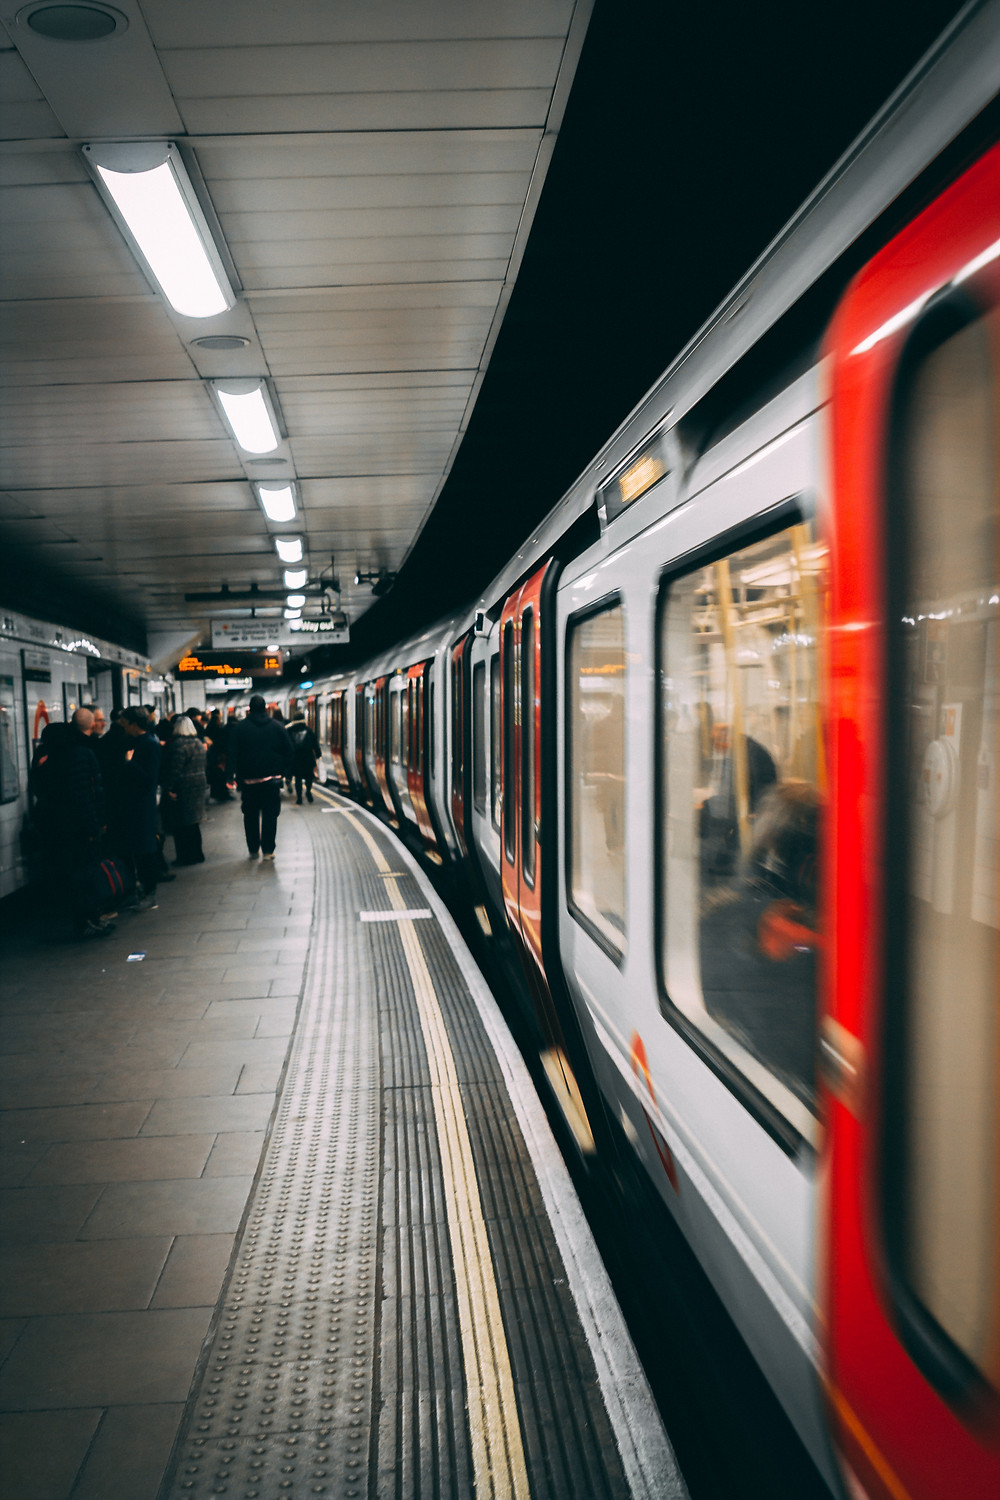 London Underground © Leon Warnking (Pexels)